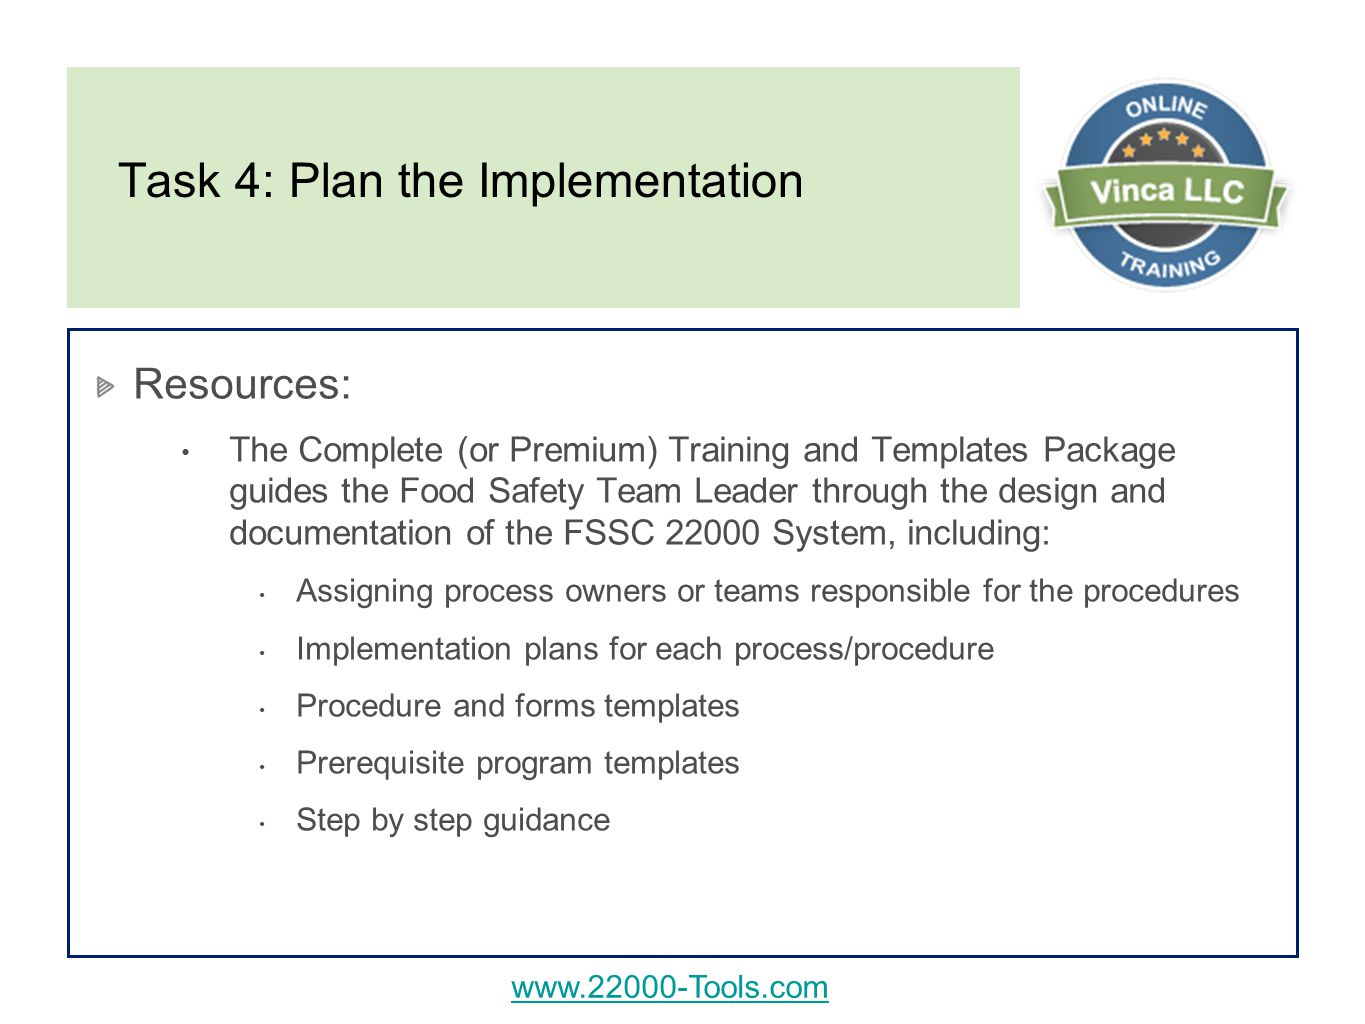 Task 4: Plan the Implementation Resources: The Complete (or Premium) Training and Templates Package guides the Food Safety Team Leader through the design and documentation of the FSSC System, including: Assigning process owners or teams responsible for the procedures Implementation plans for each process/procedure Procedure and forms templates Prerequisite program templates Step by step guidance